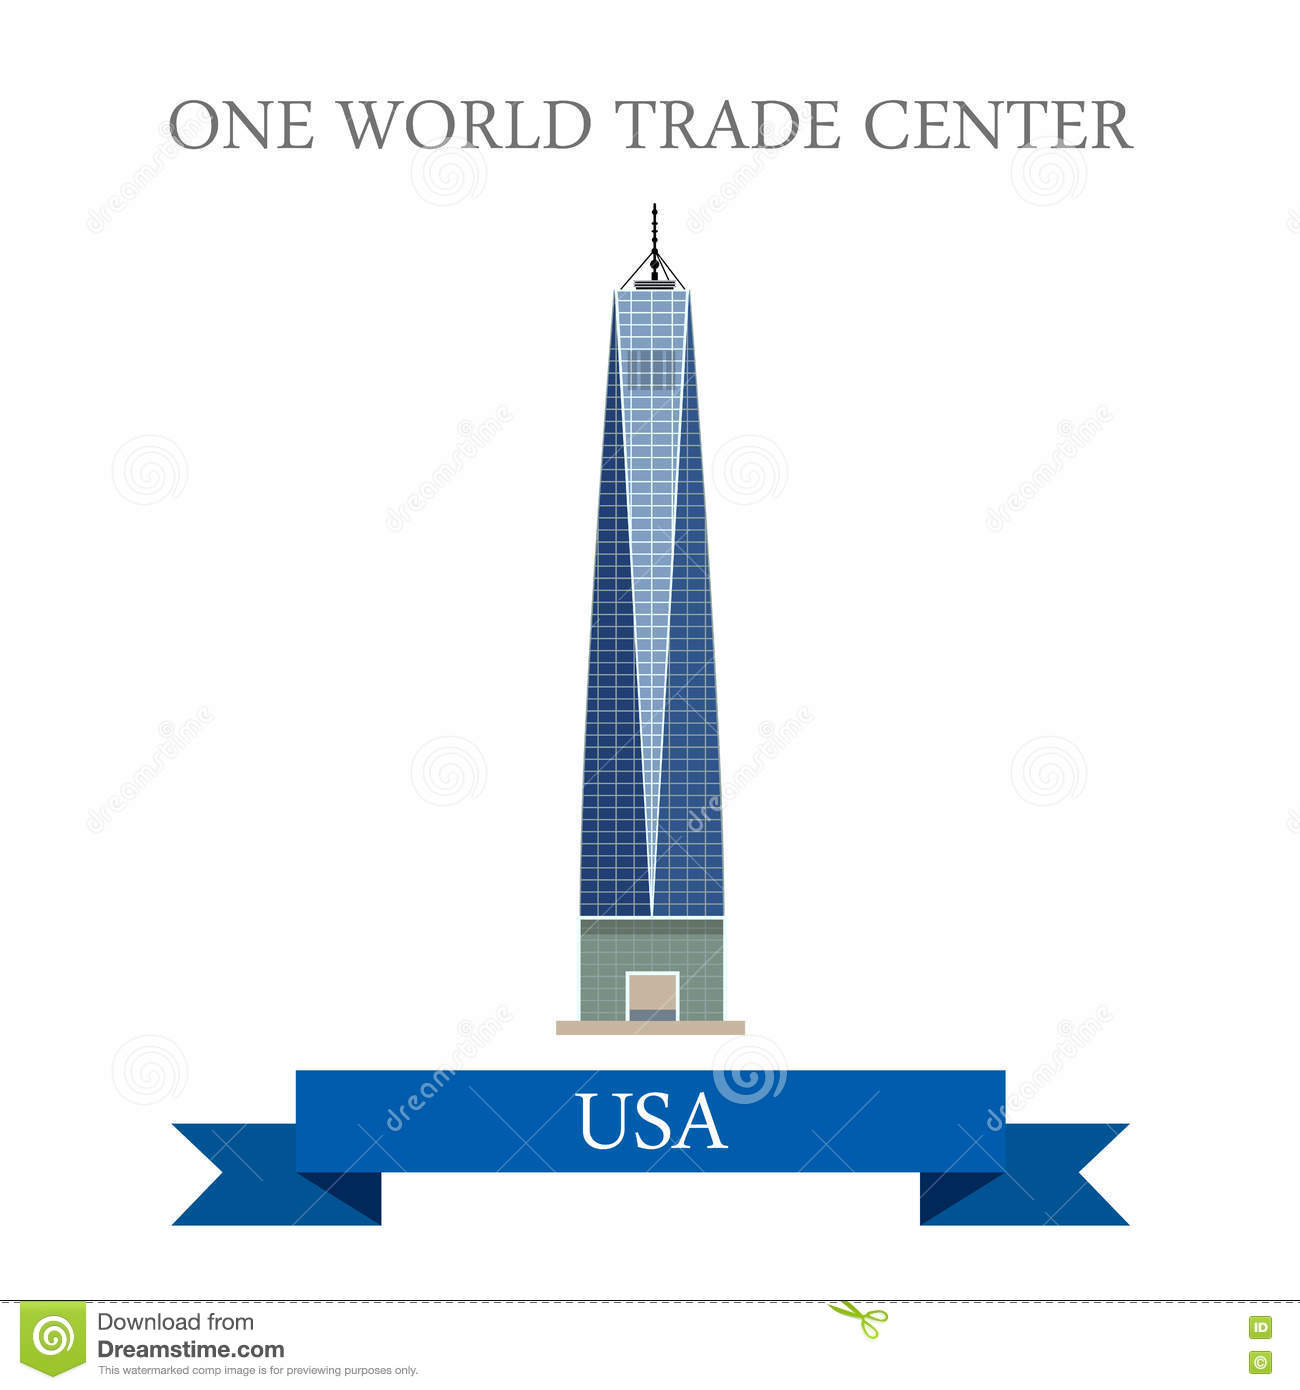 One world trade center clipart.